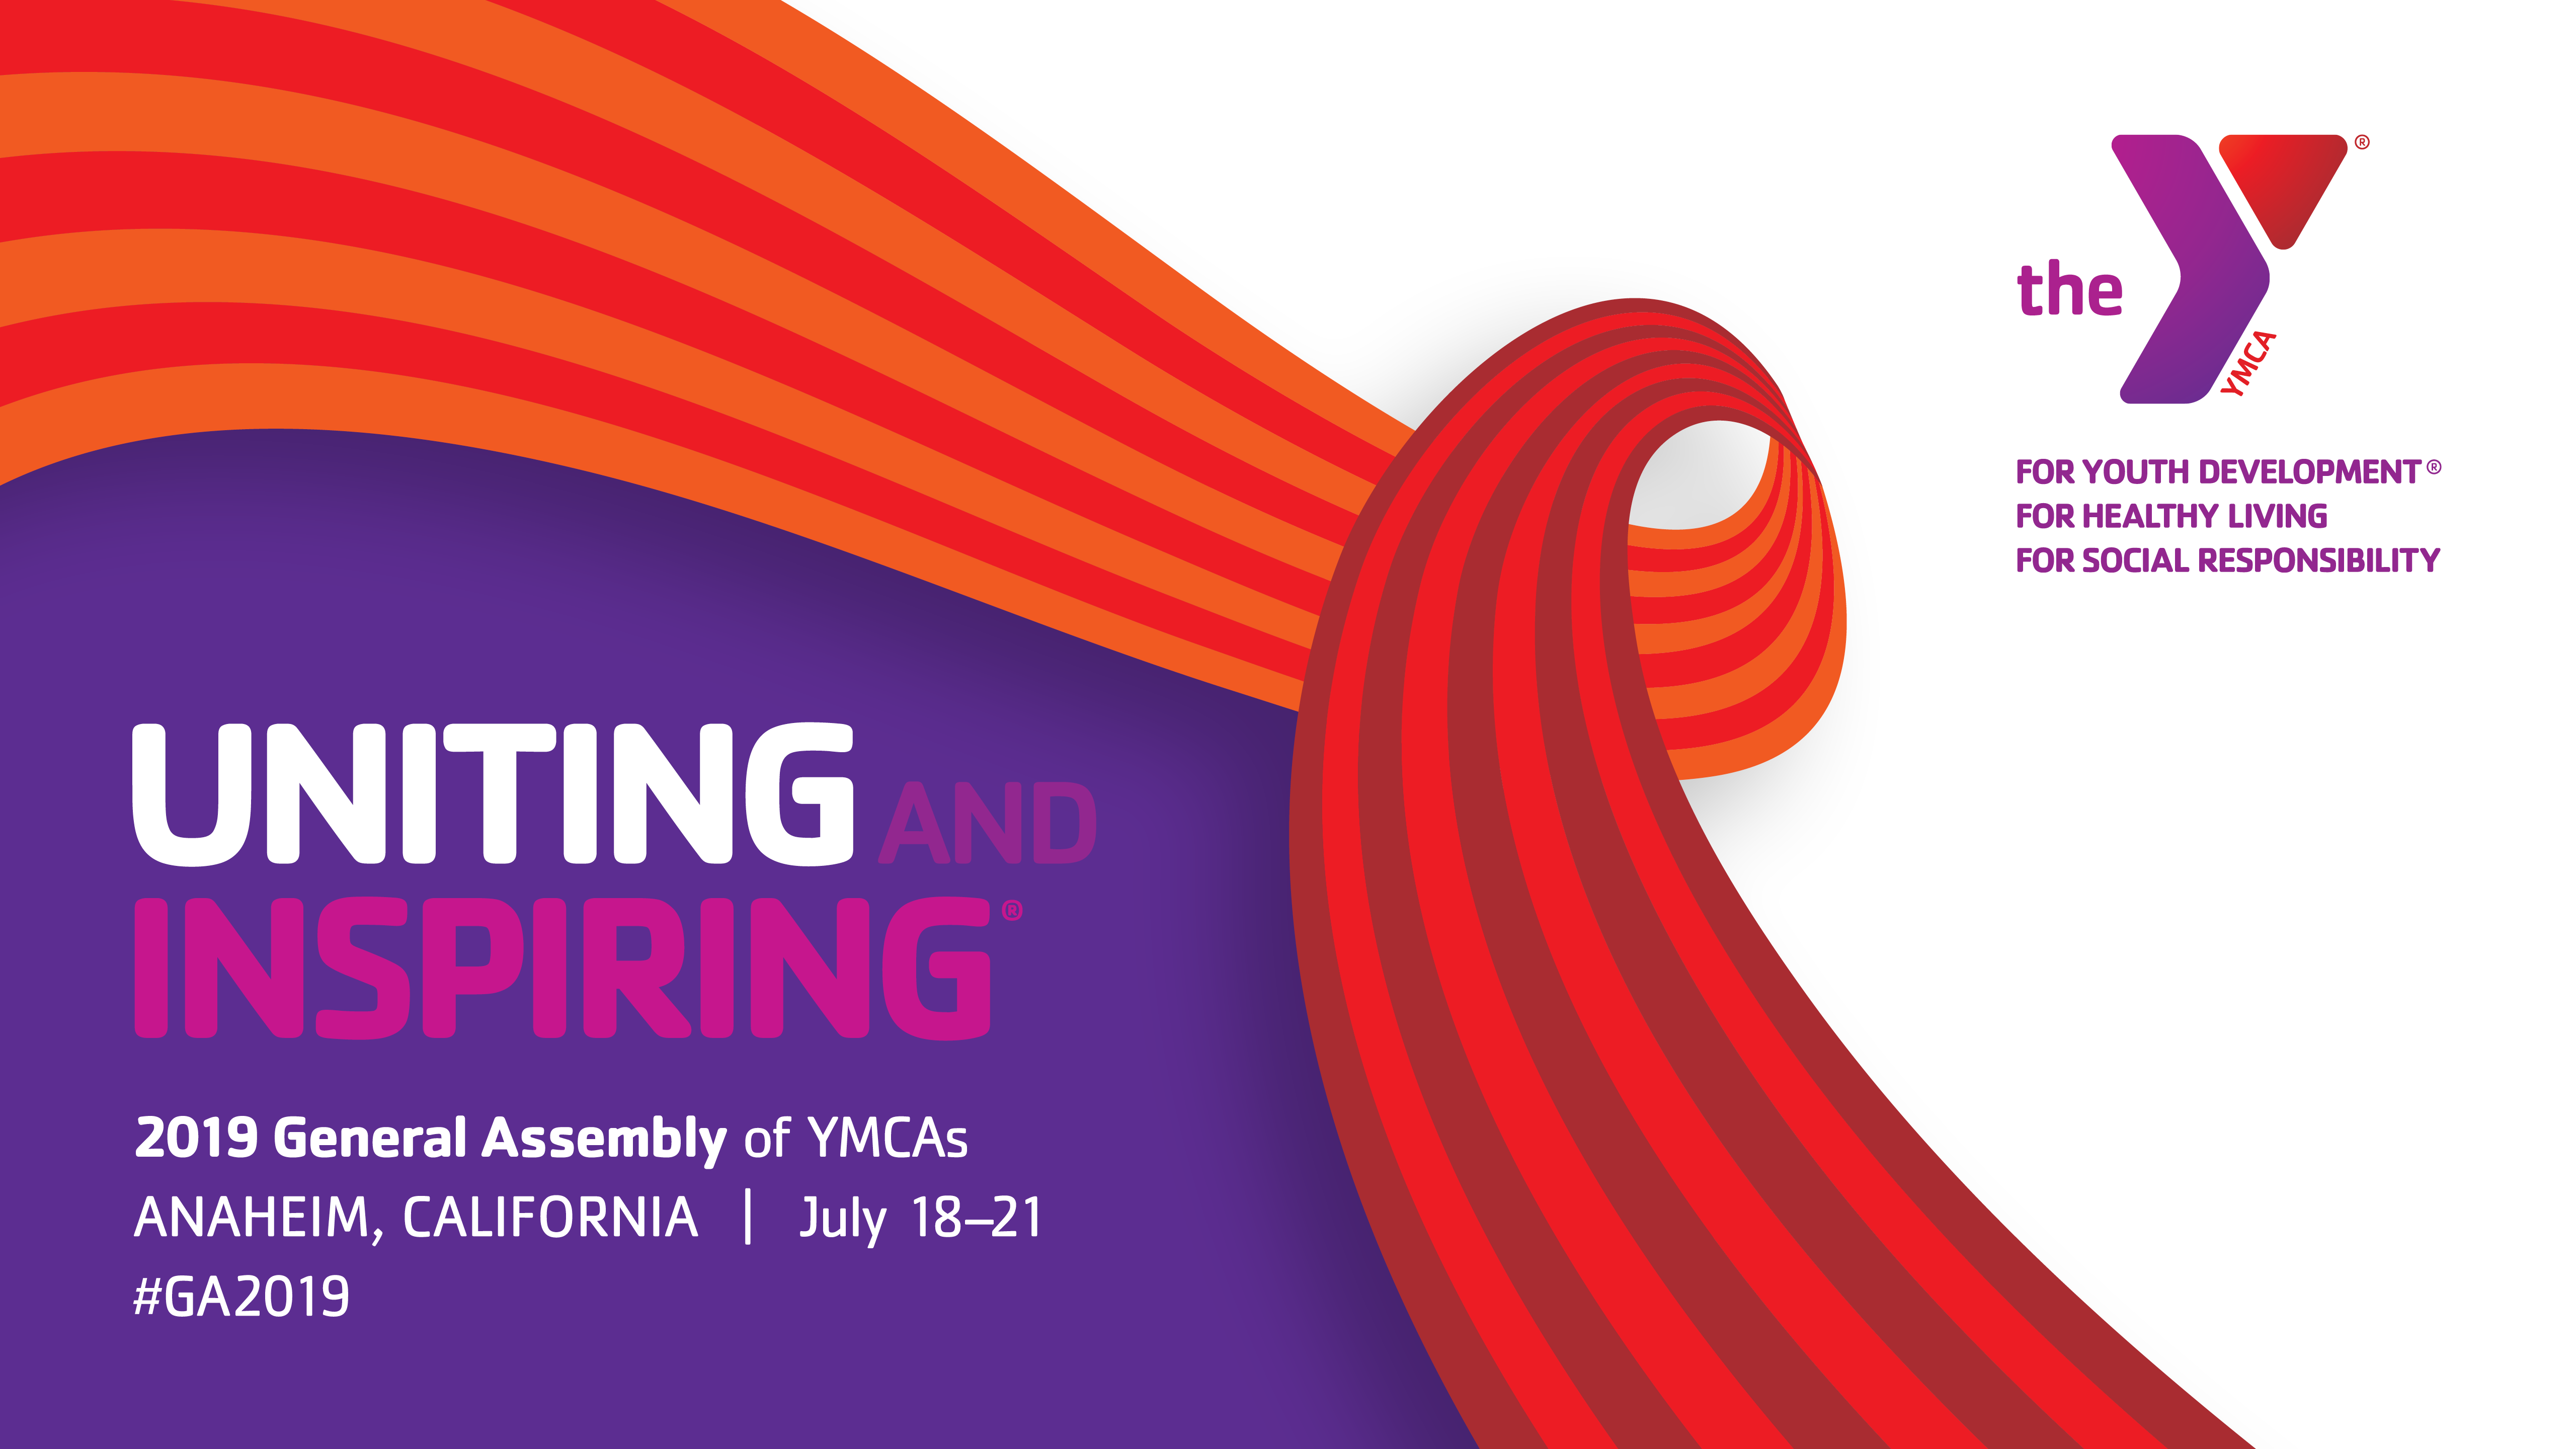 YMCA of the USA - 2019 General Assembly